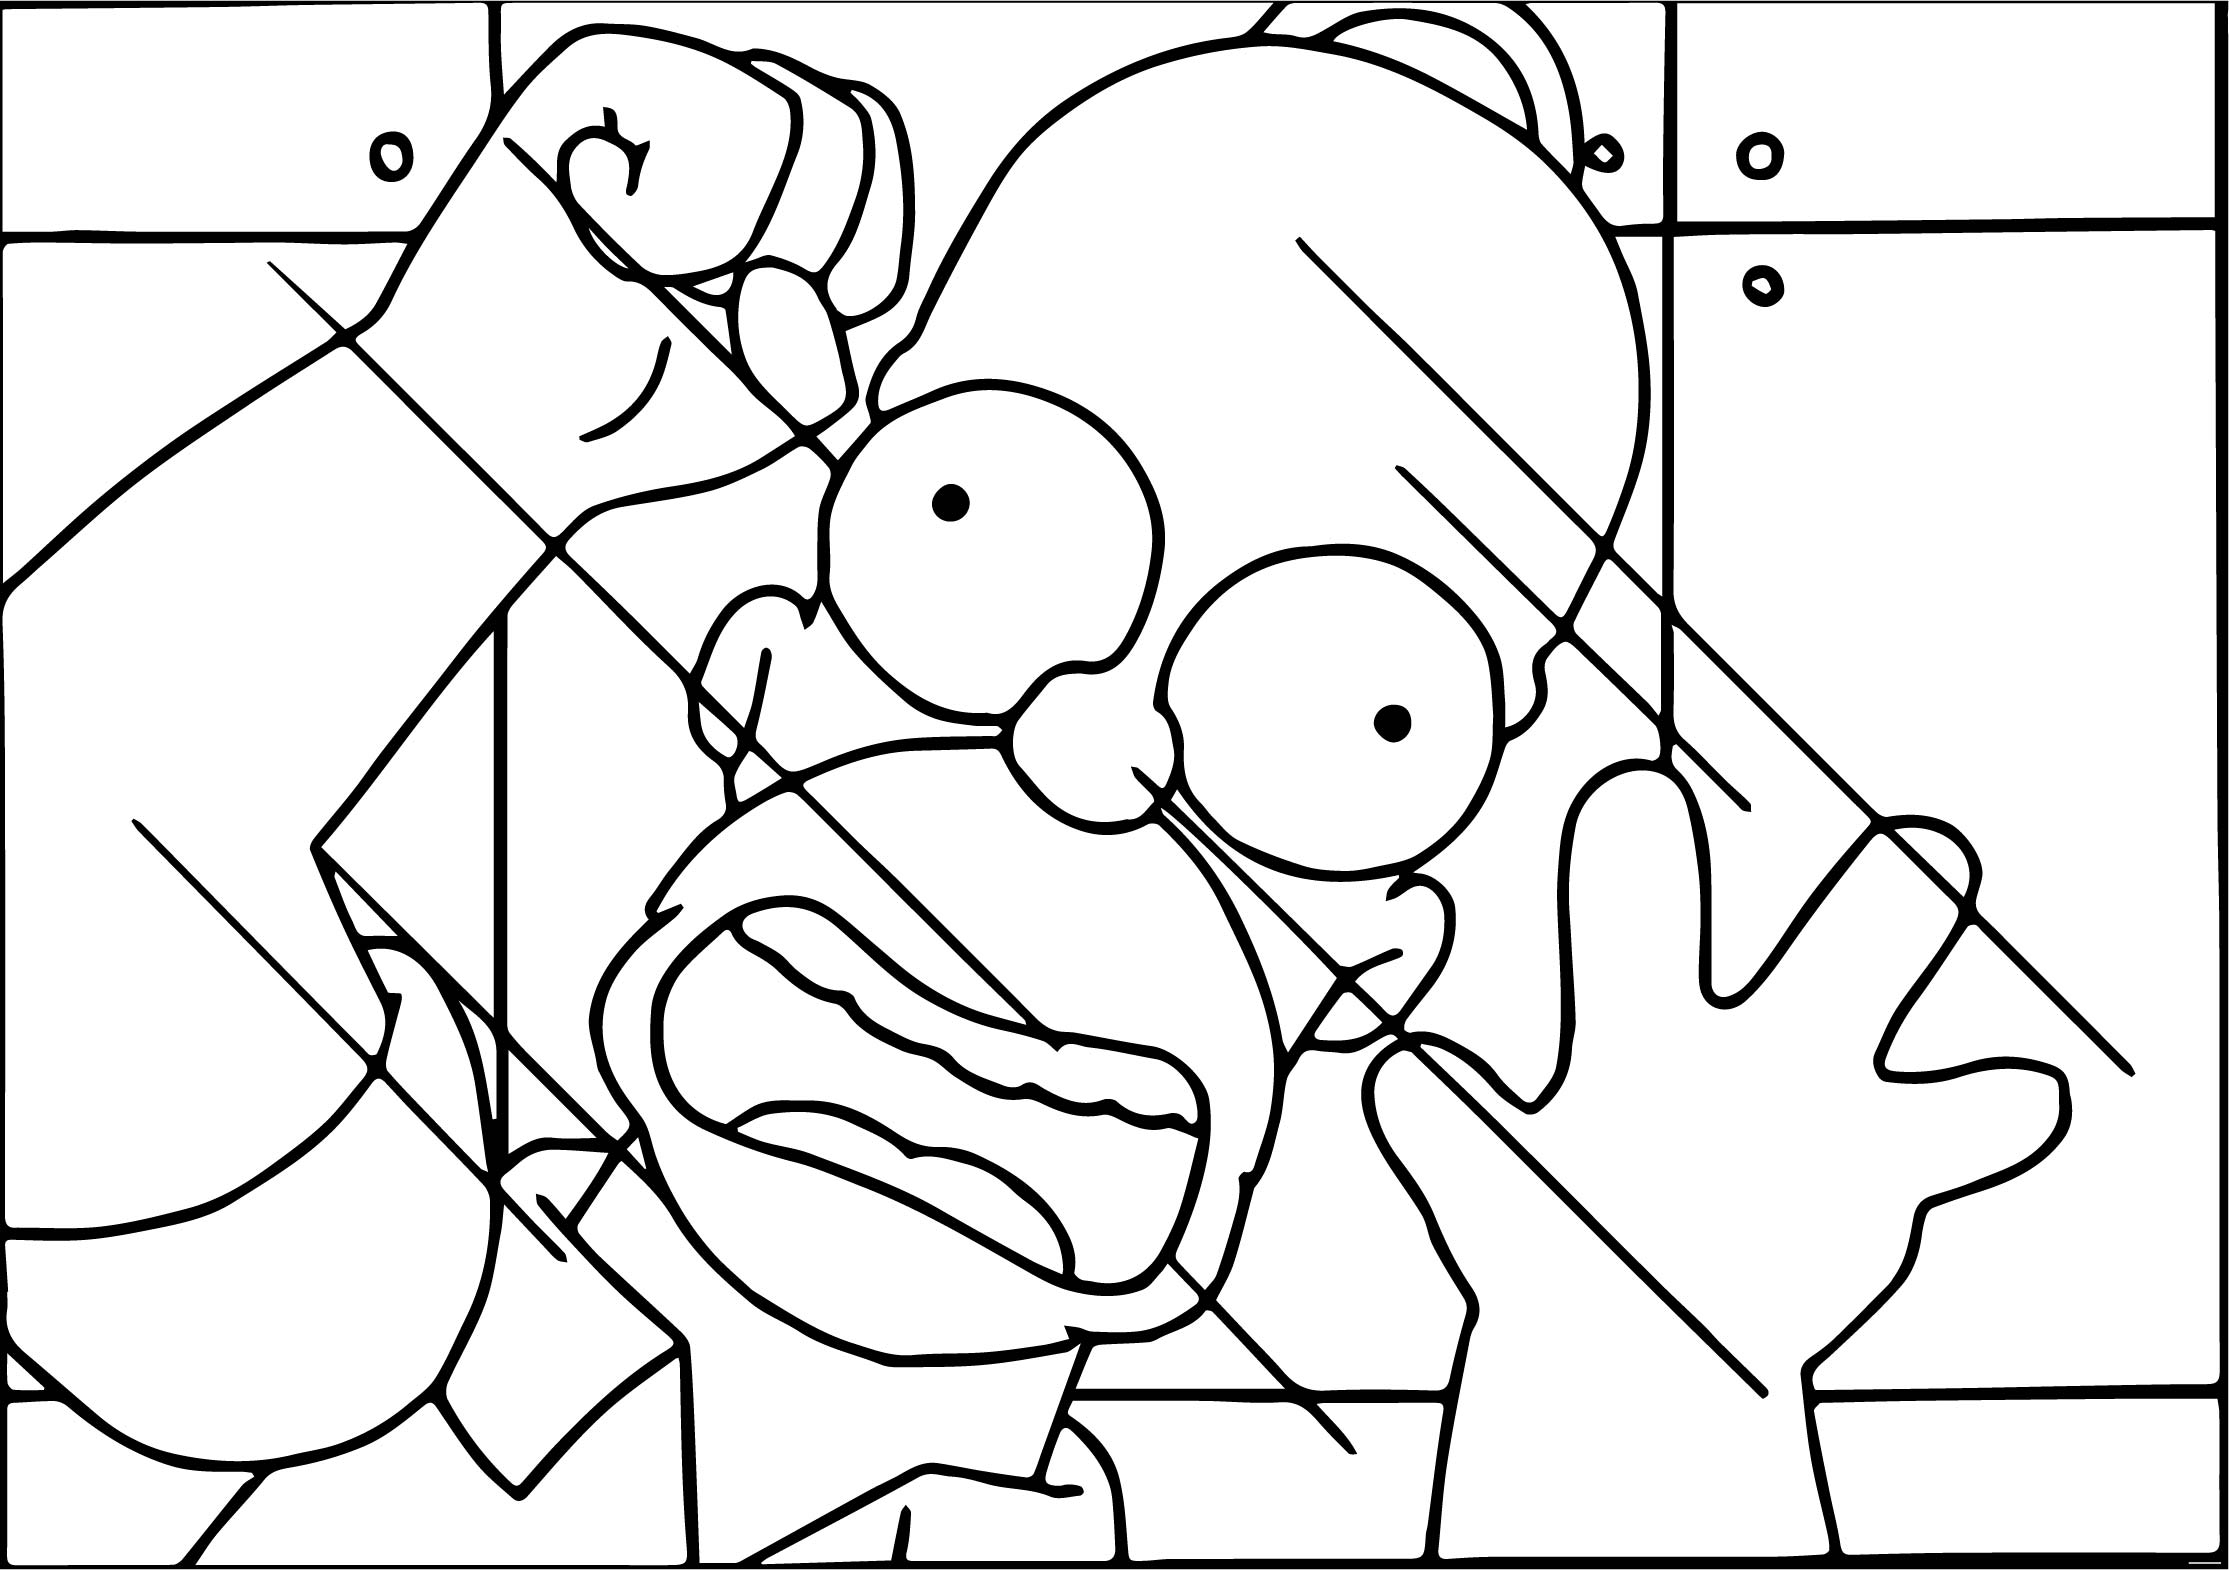 The Simpsons Help Glass Coloring Page